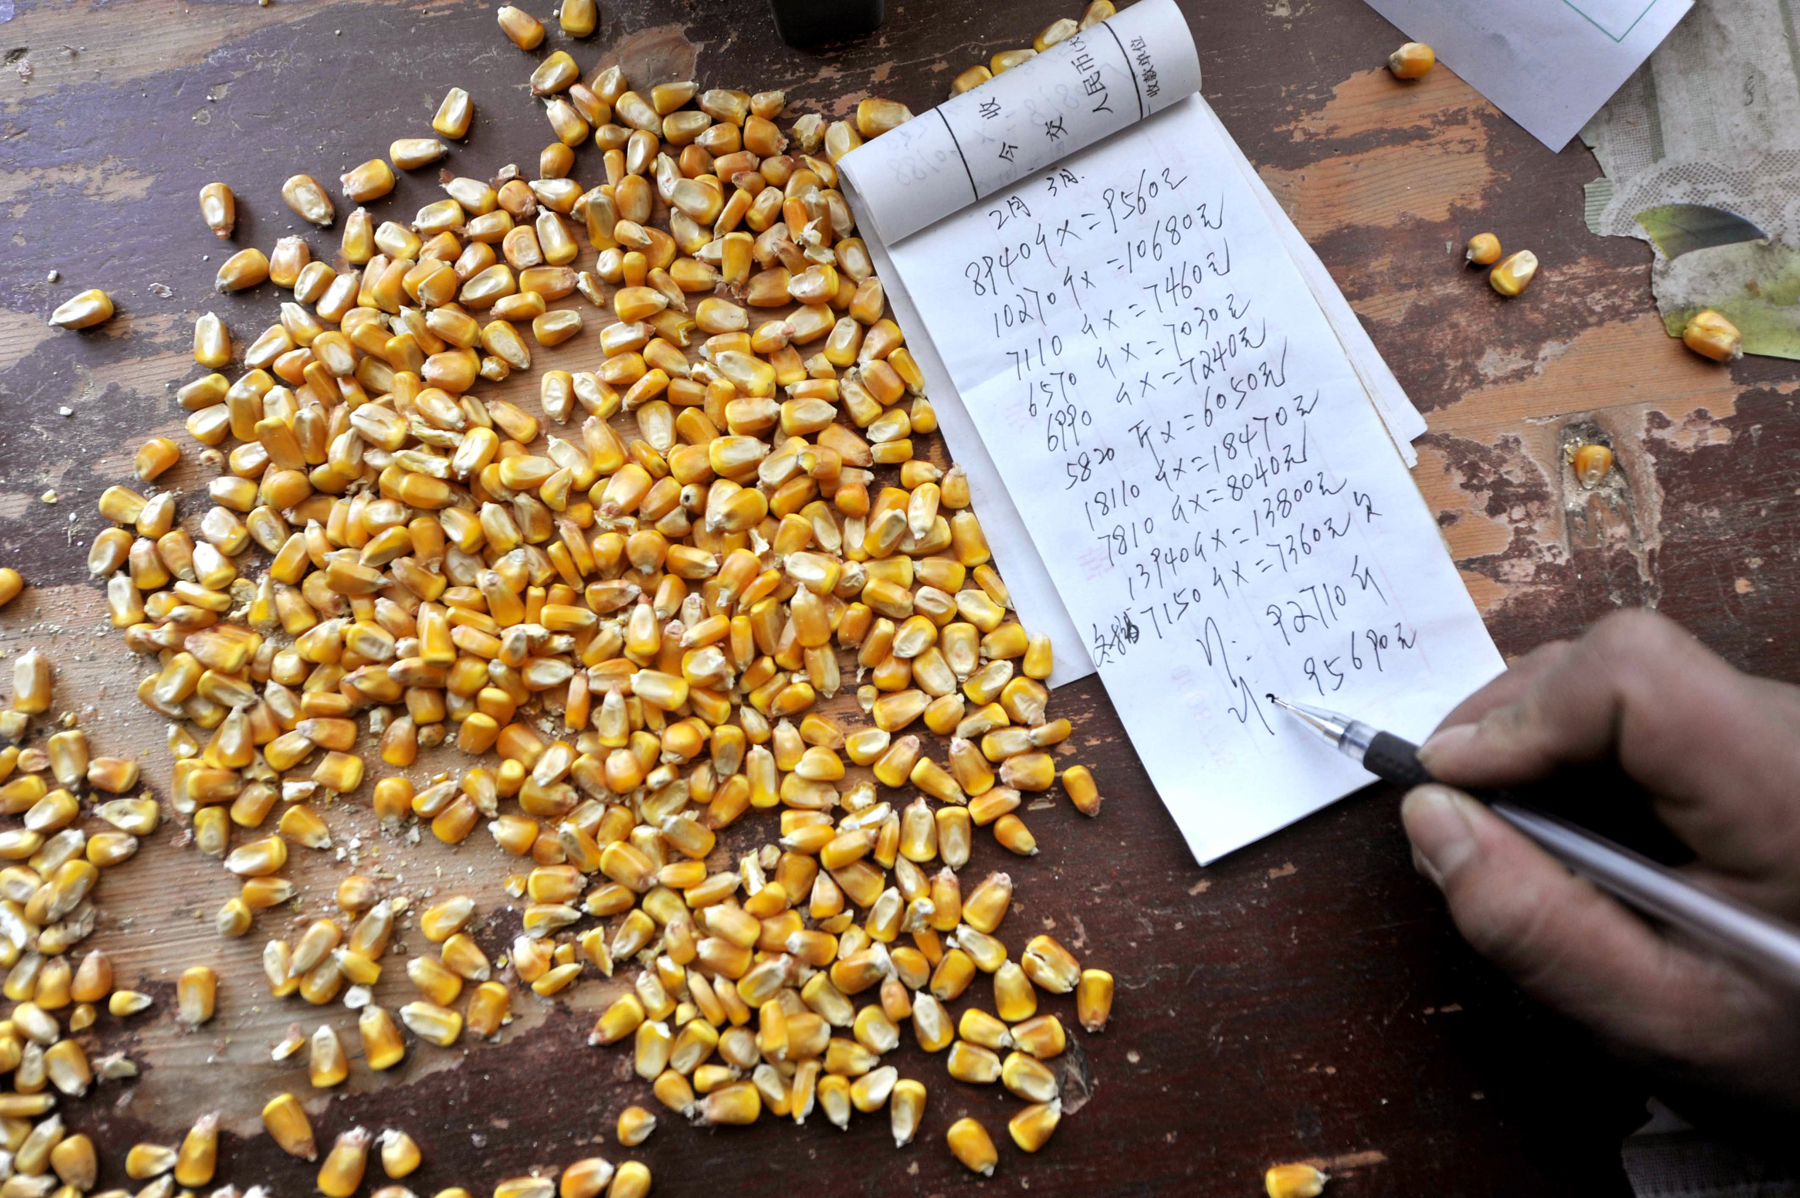 A corn purchaser writes on his account in northwest China in 2012. In November 2013, officials began rejecting imports of U.S. corn when they detected traces of a new gene not yet approved in China. Photo: Peng Zhaozhi/Xinhua/Landov